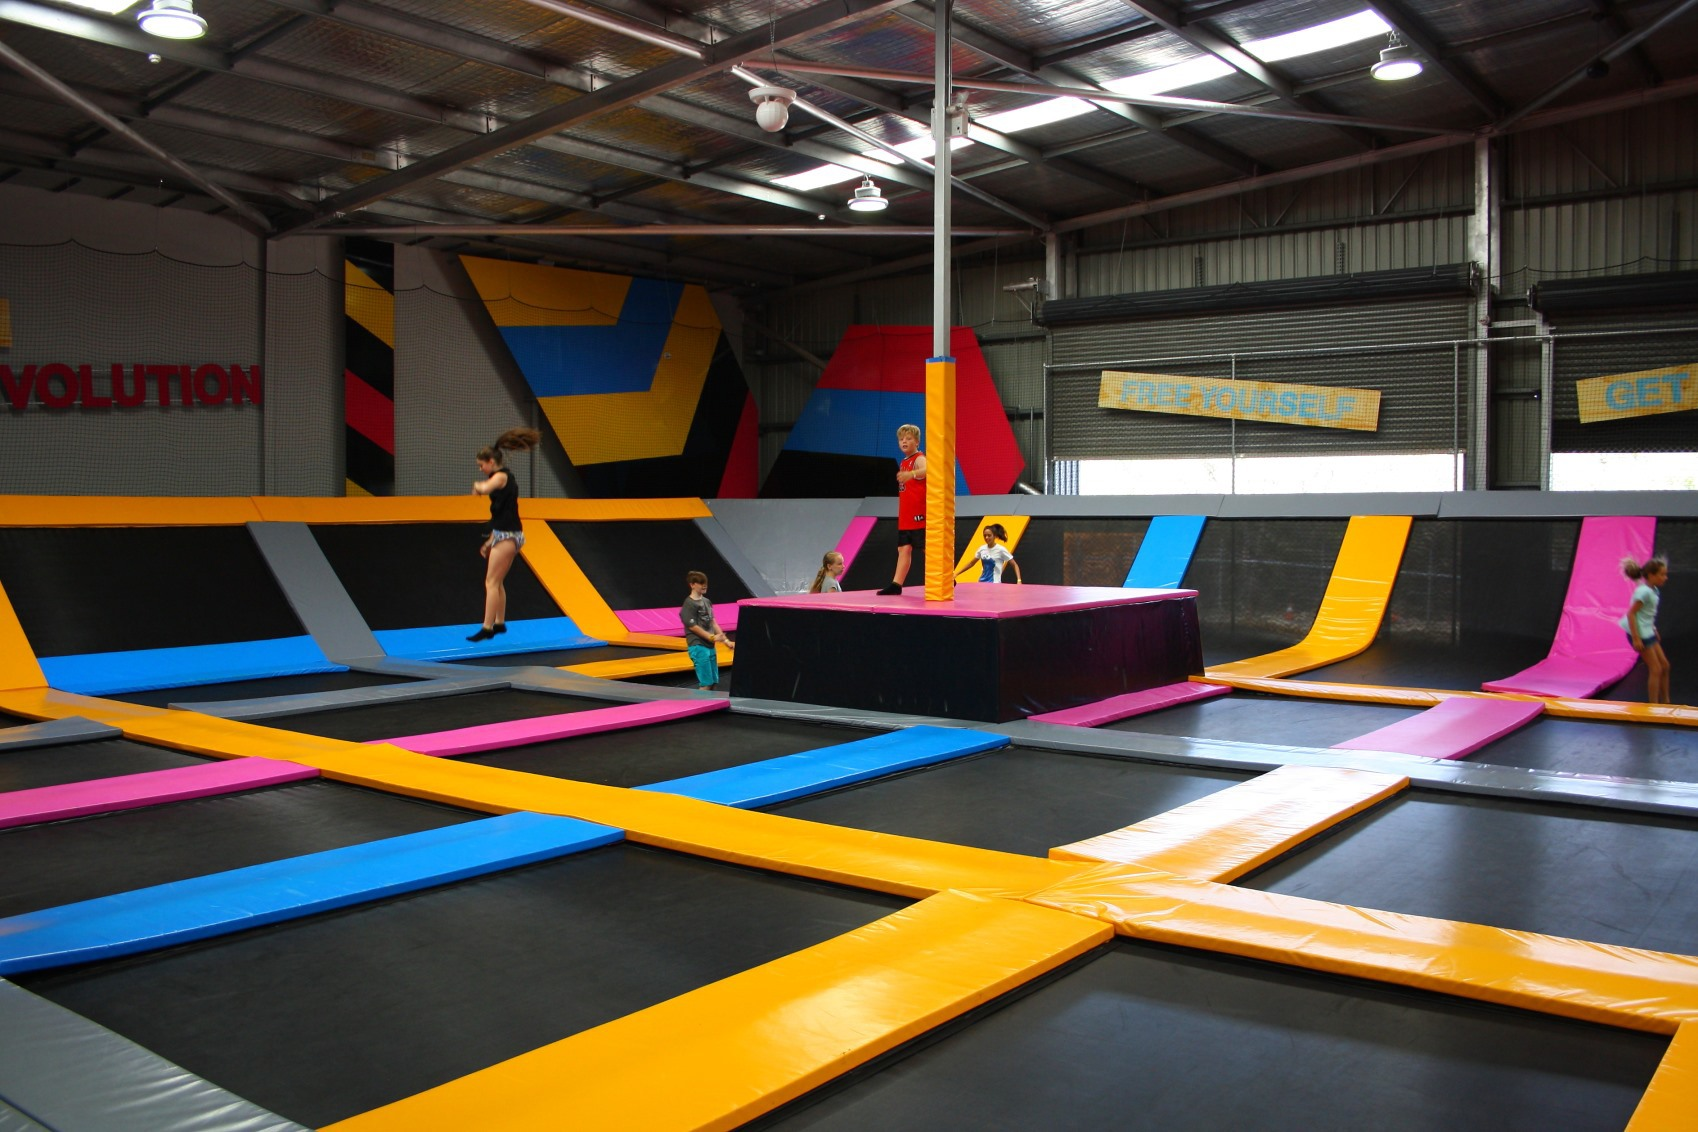 bounceinc: trampoline park & activities centre - perth